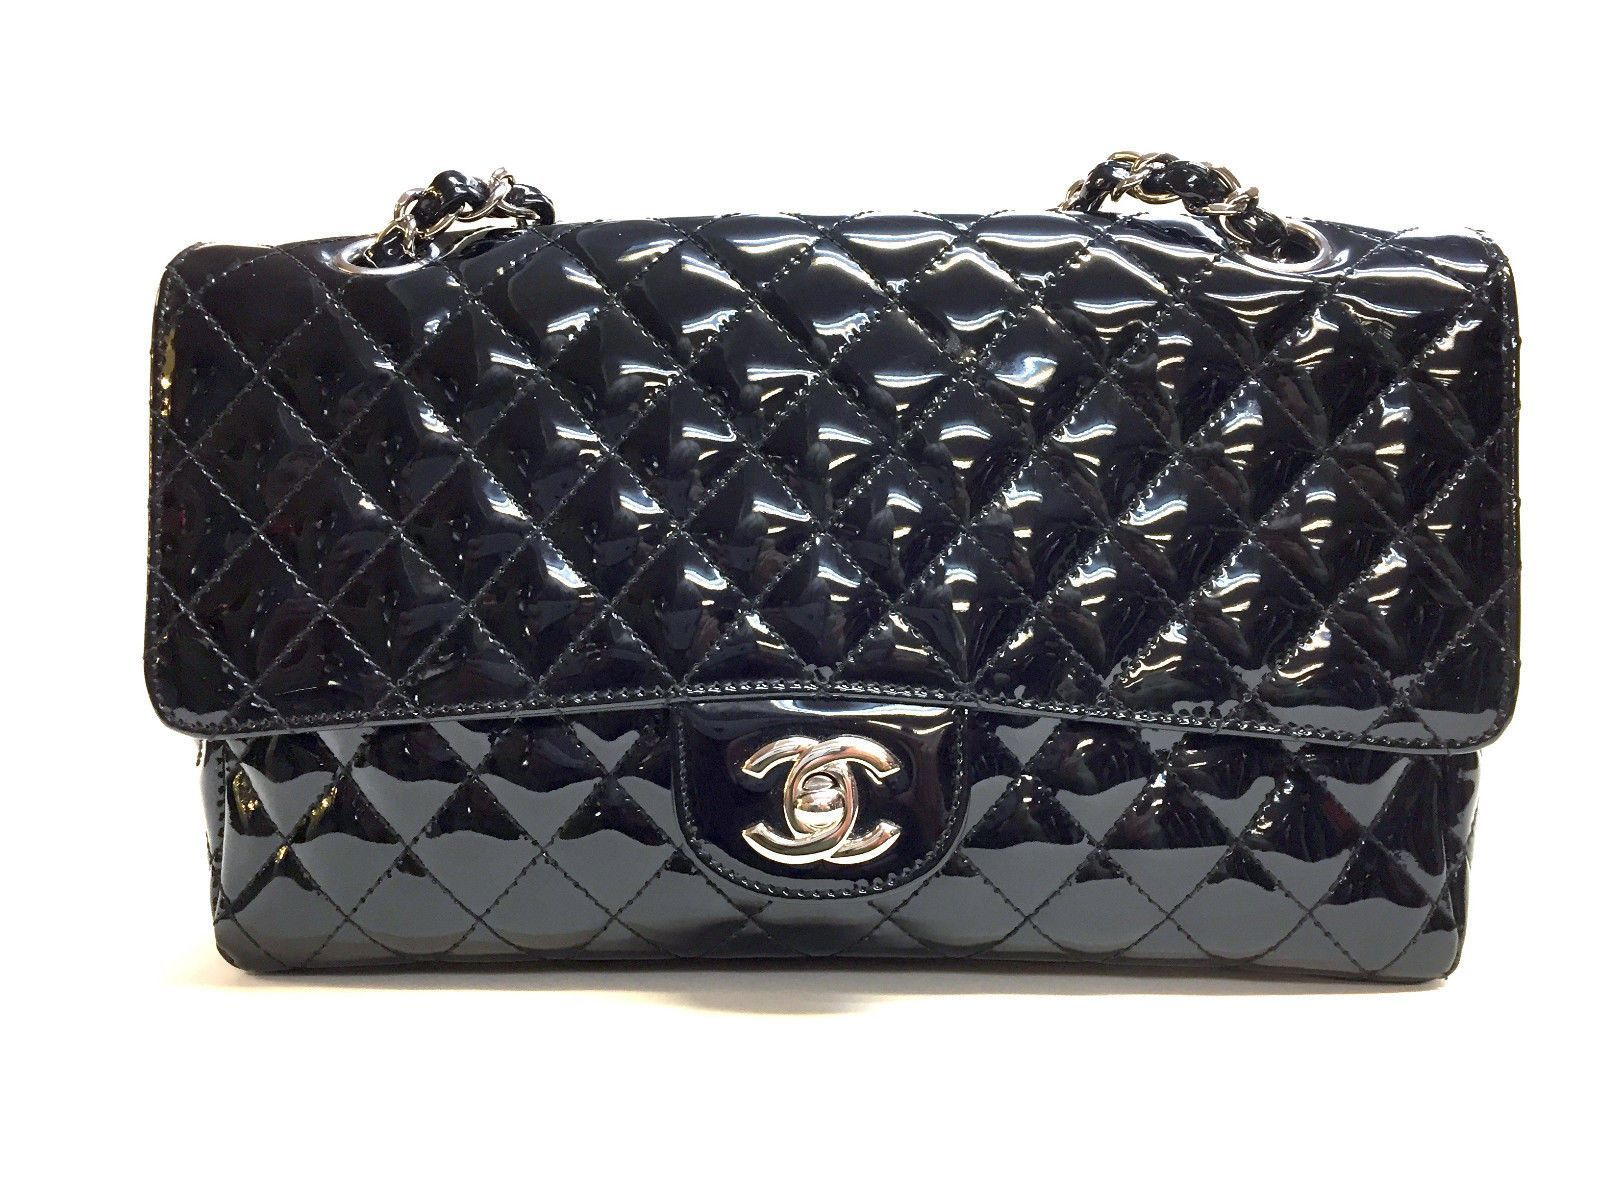 CHANEL Black Patent Leather Single Flap SHW Classic